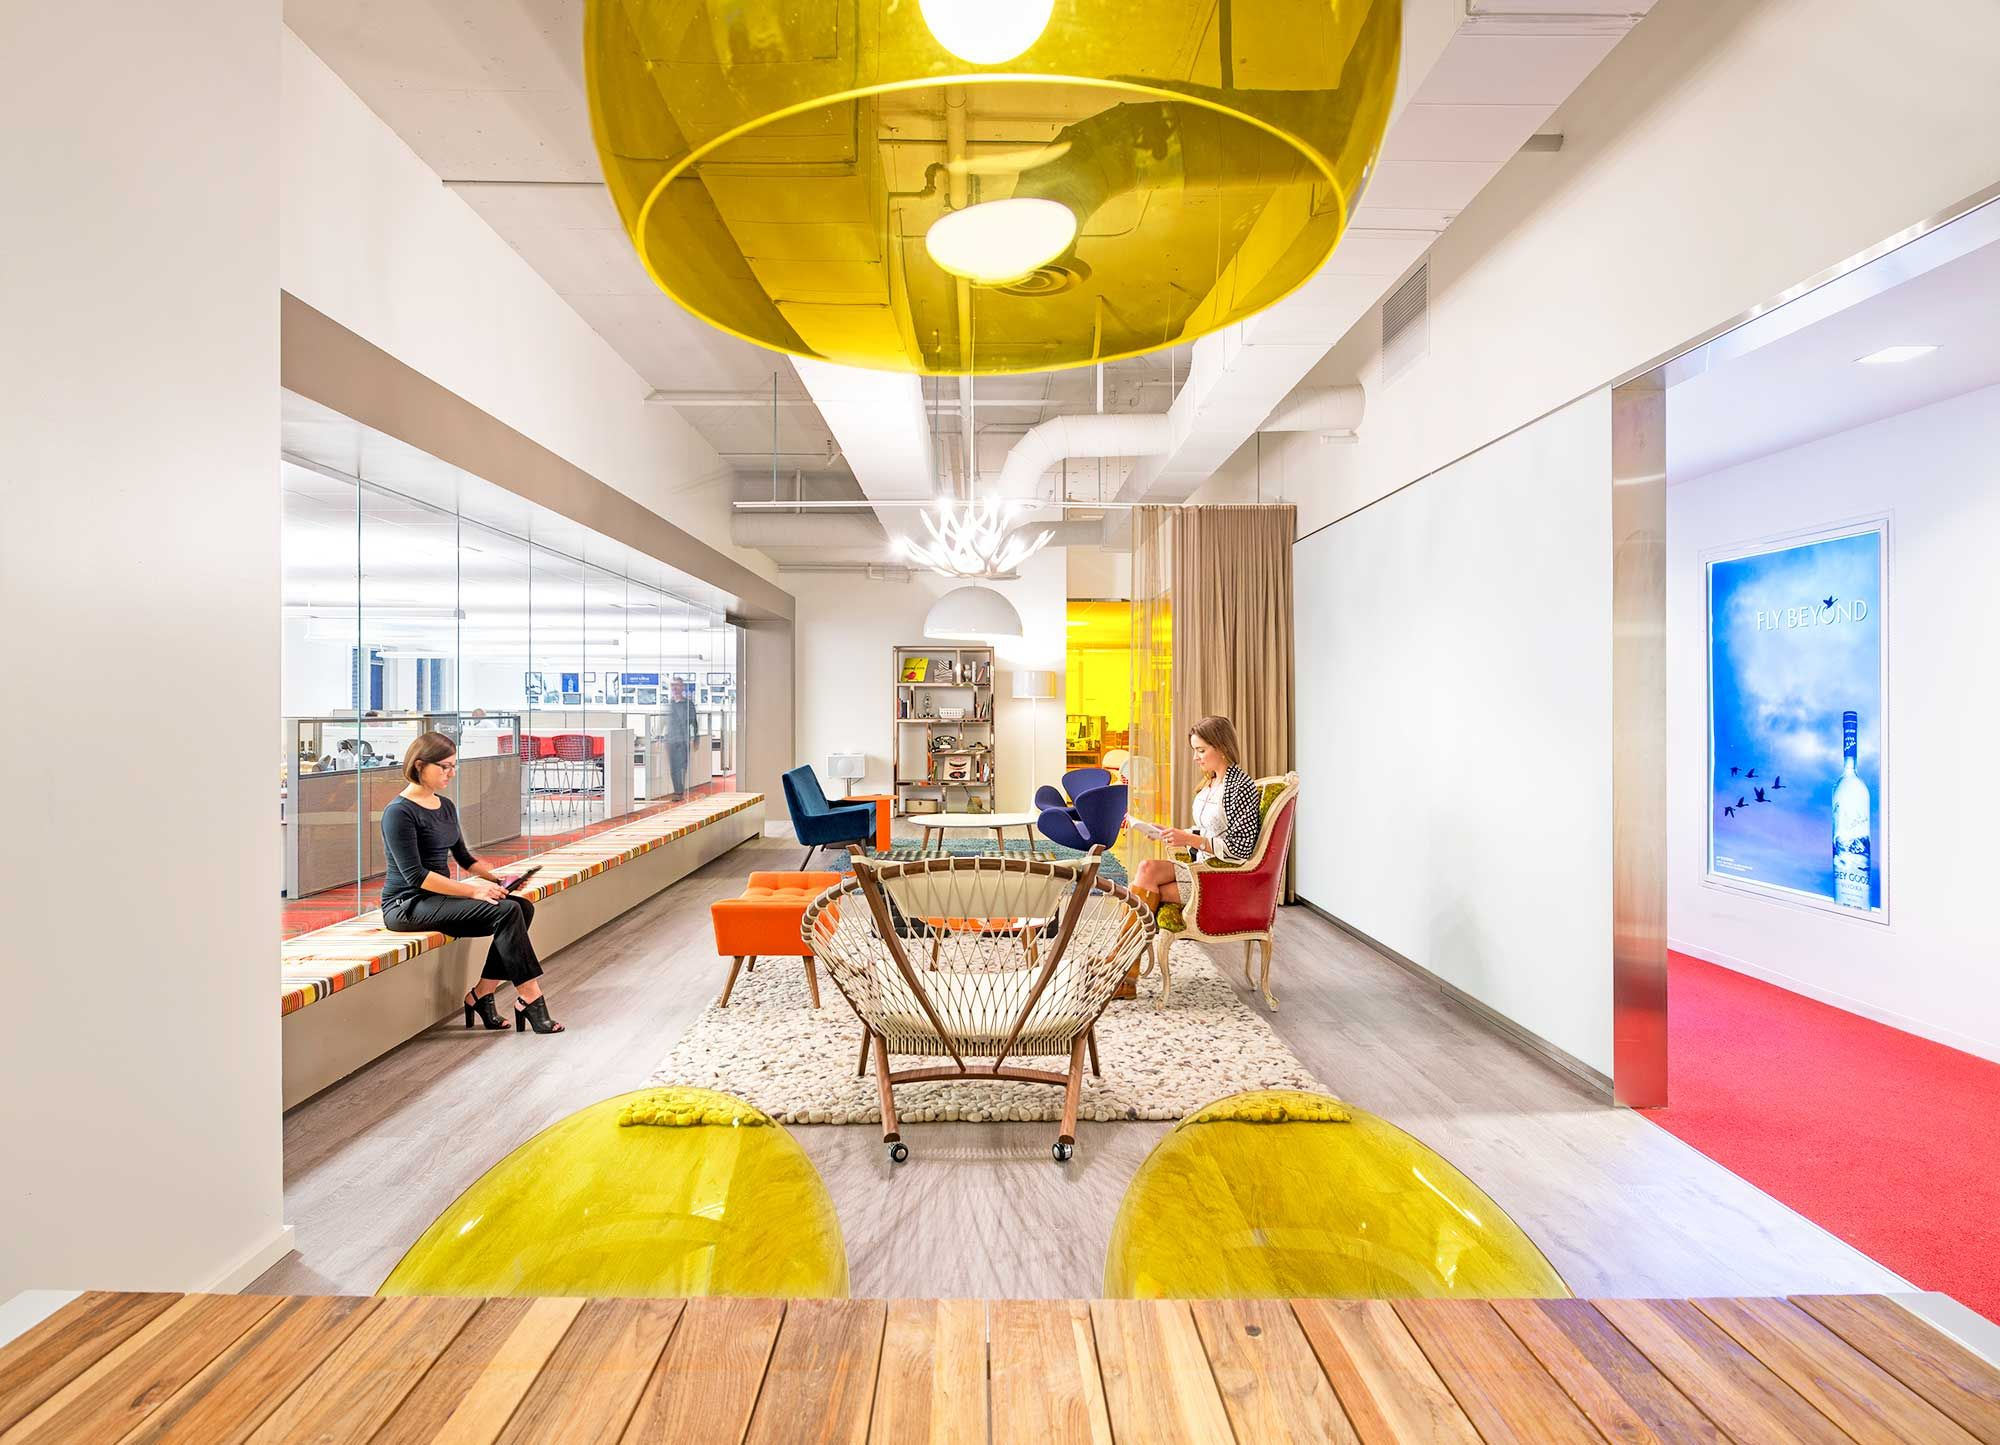 The Future Of Workplace With Images Best Interior Design Interior Design Projects Corporate Office Design